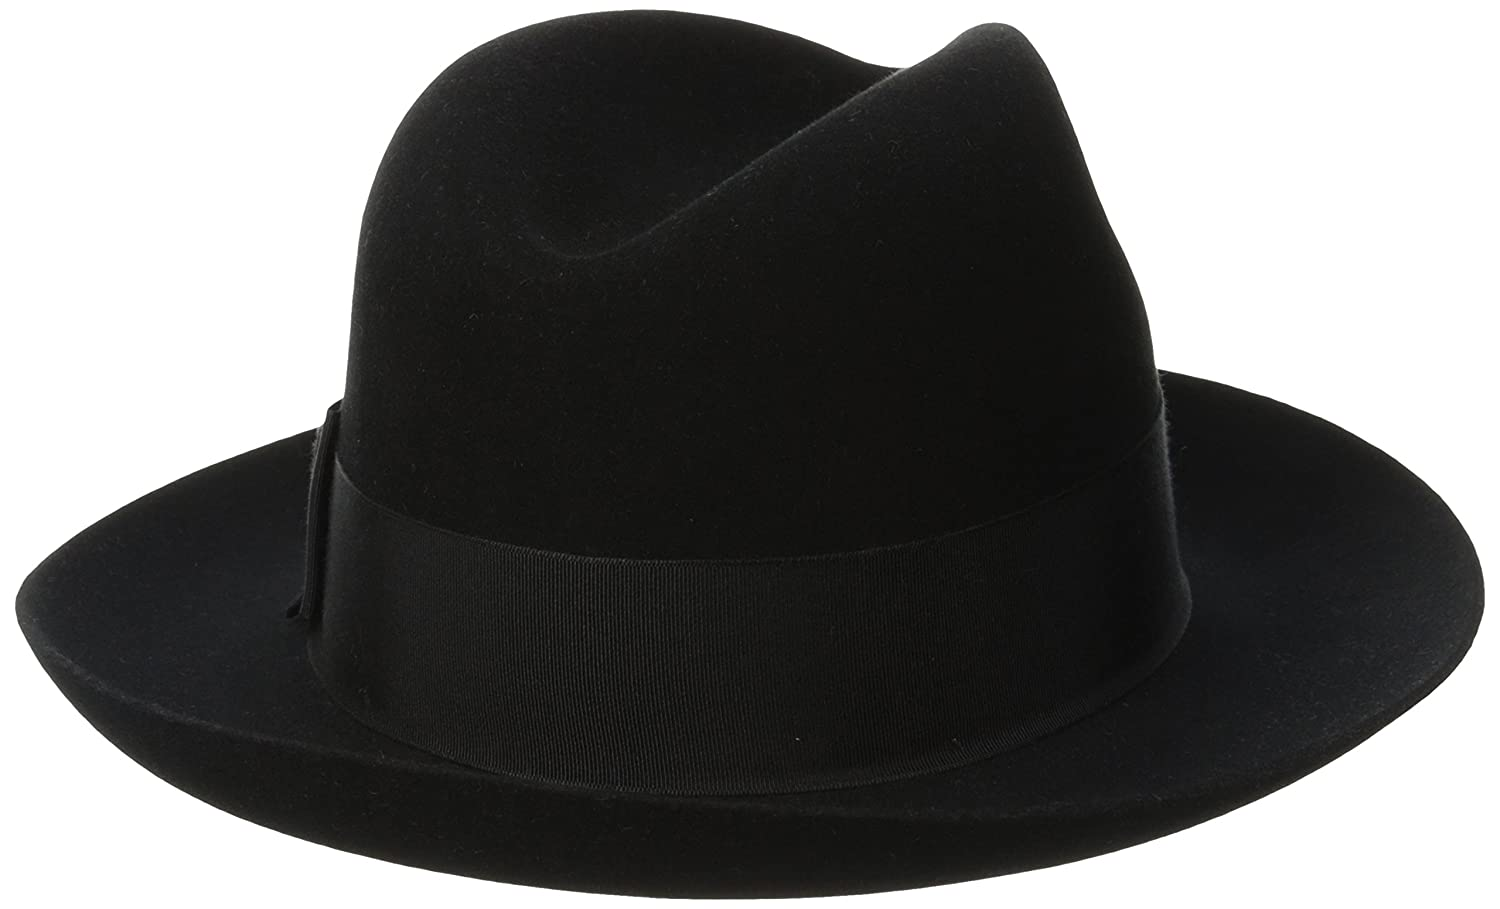 efd44d2fab81b Stetson Men s Sttson Temple Royal Deluxe Fur Felt Hat at Amazon Men s  Clothing store